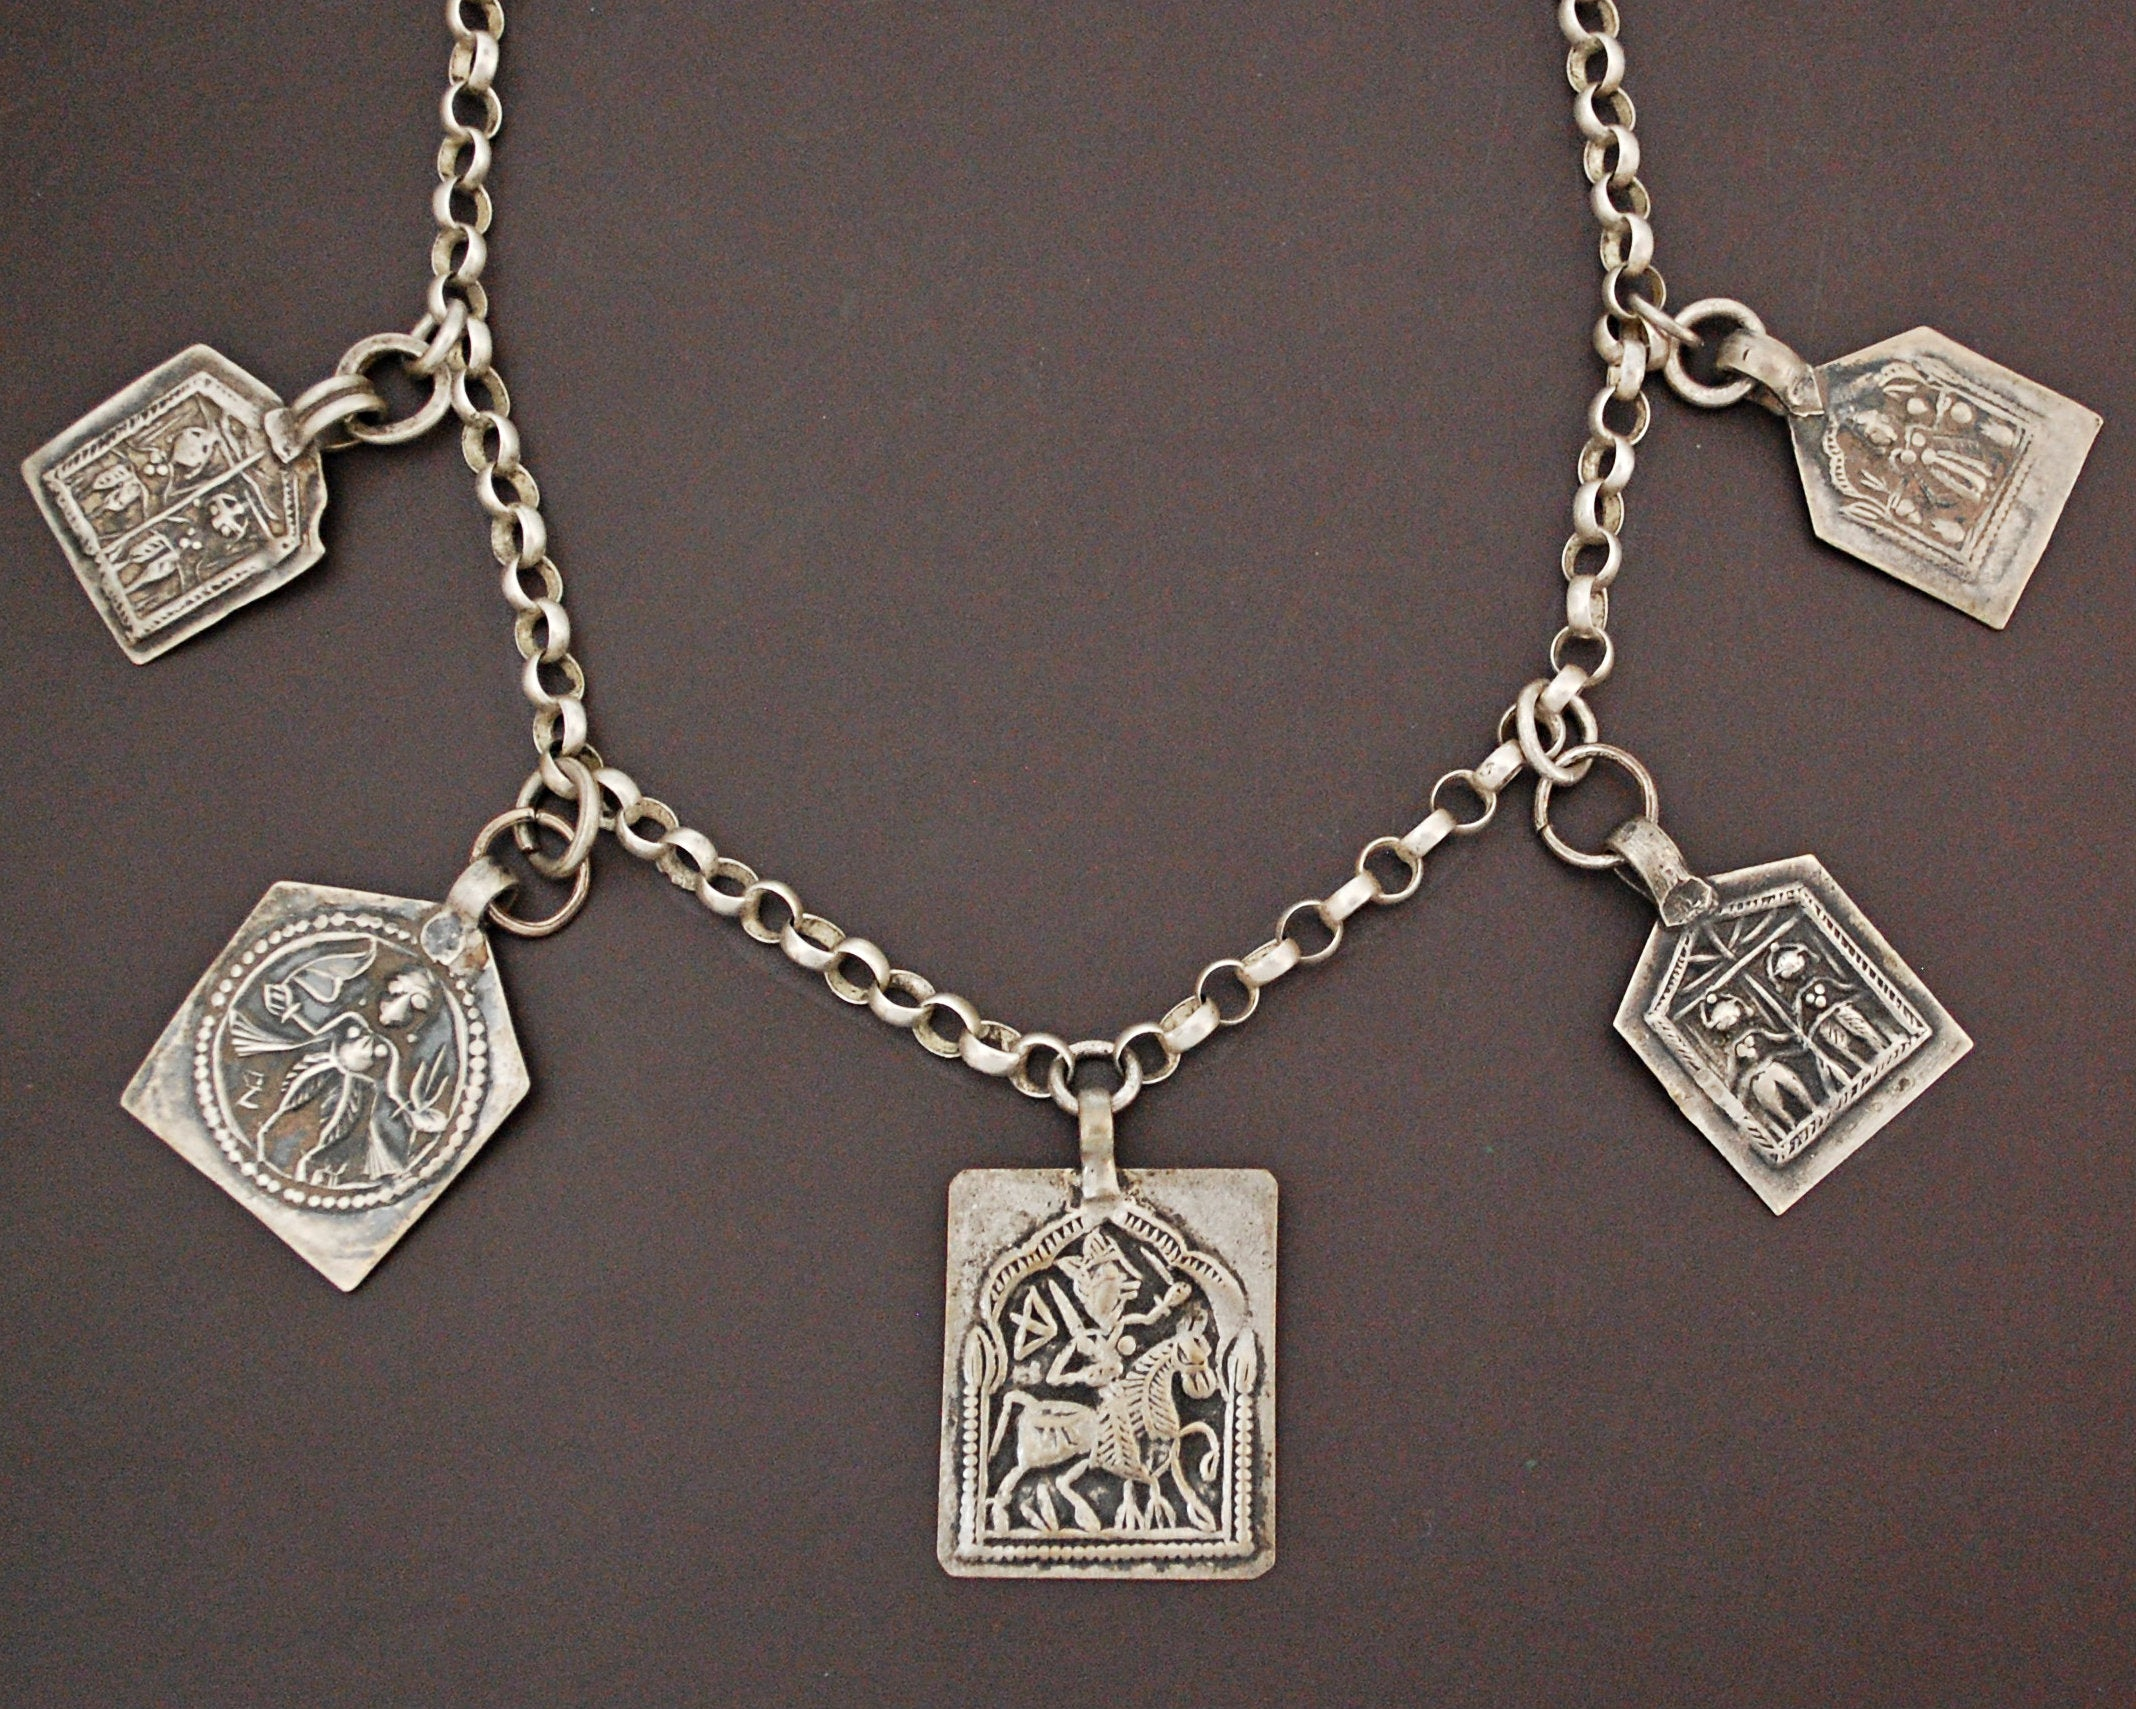 Hindu Amulet Pendant Necklace